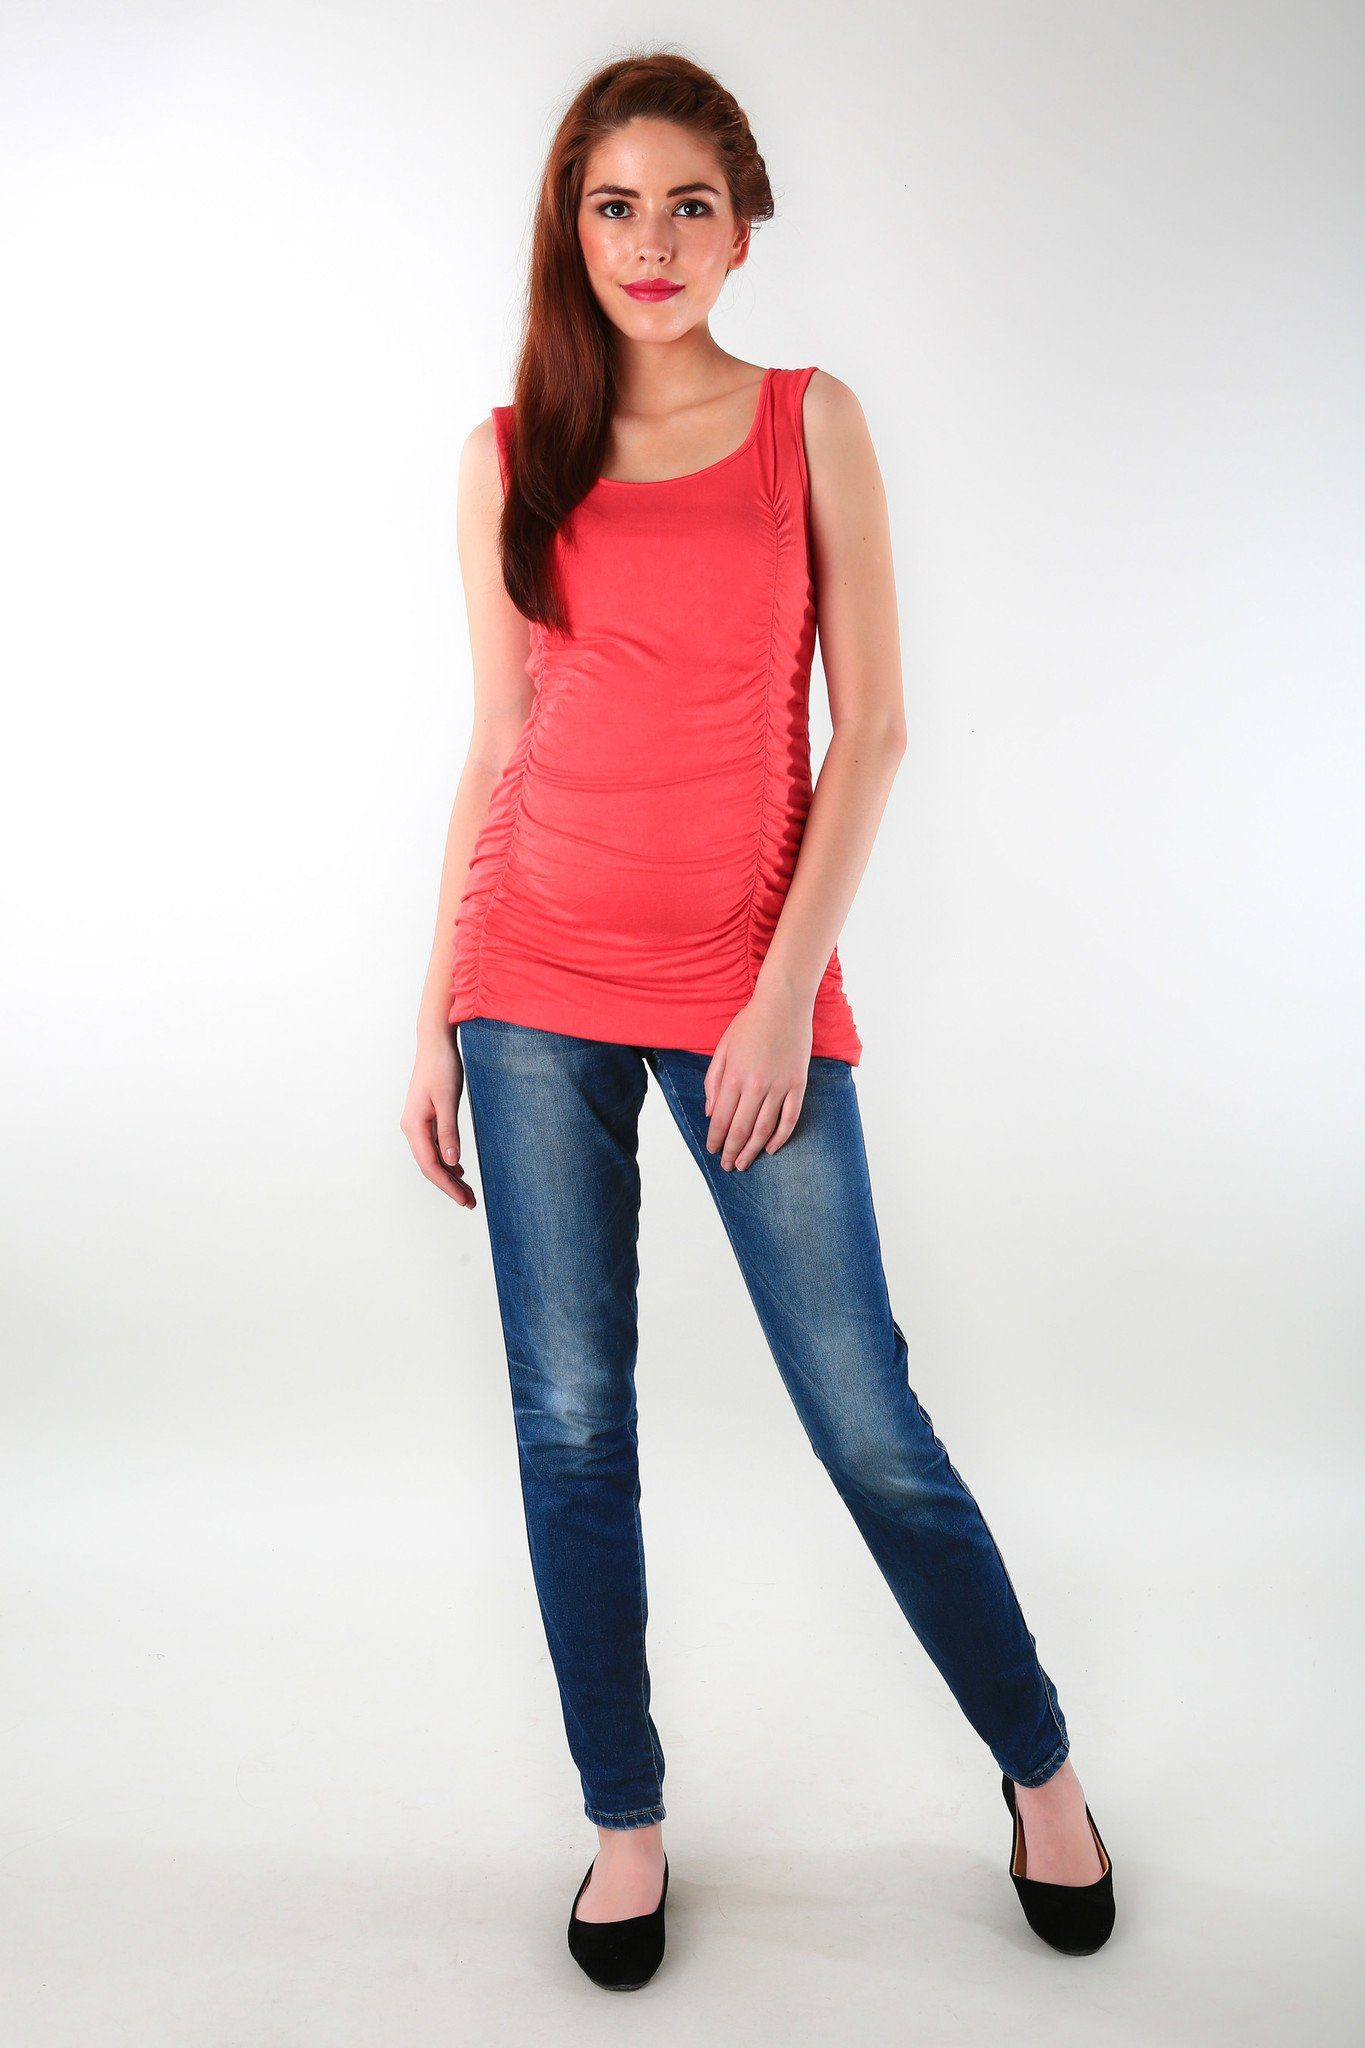 Gathered Coral Maternity Tank Top - MOMZJOY.COM - 1